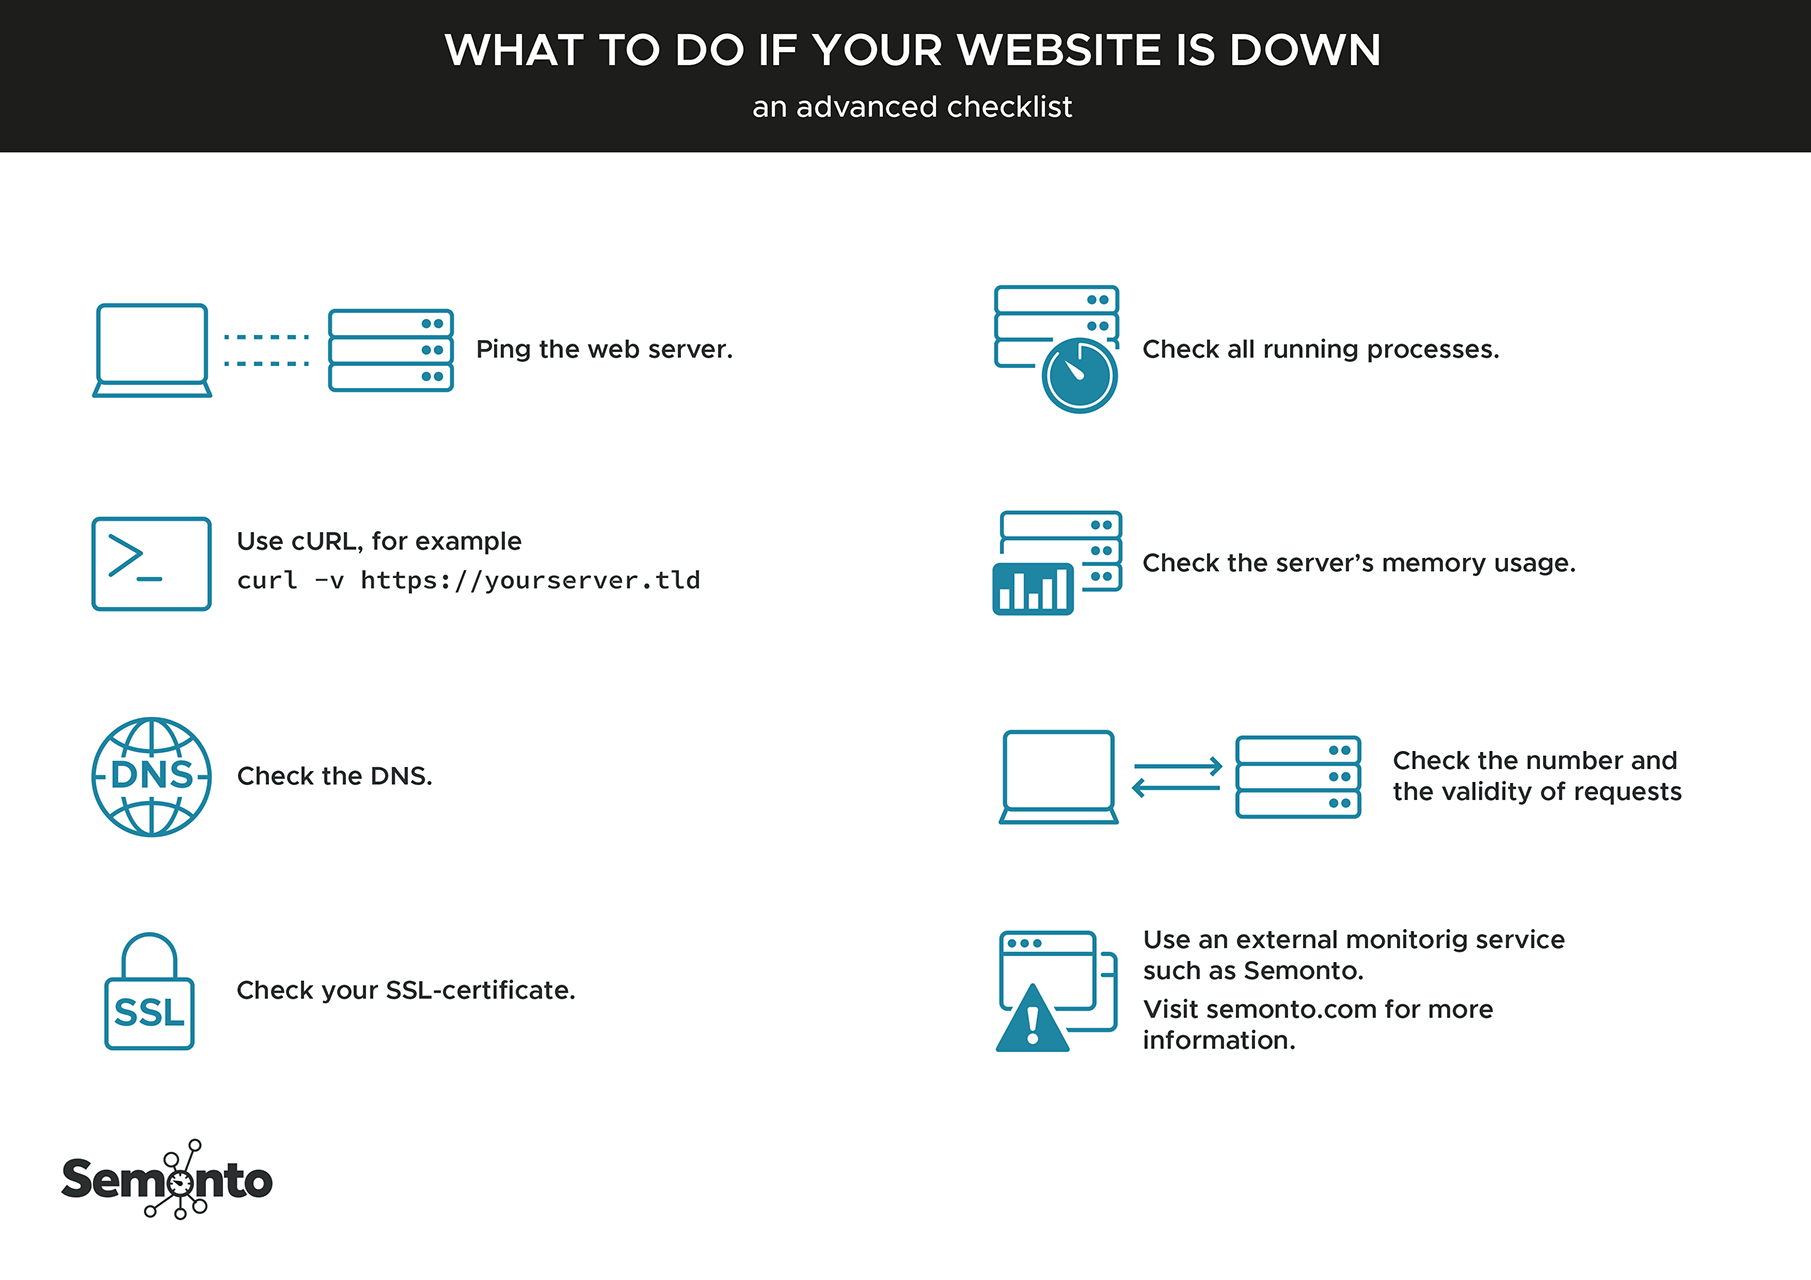 Advanced list of things to check when your website is down